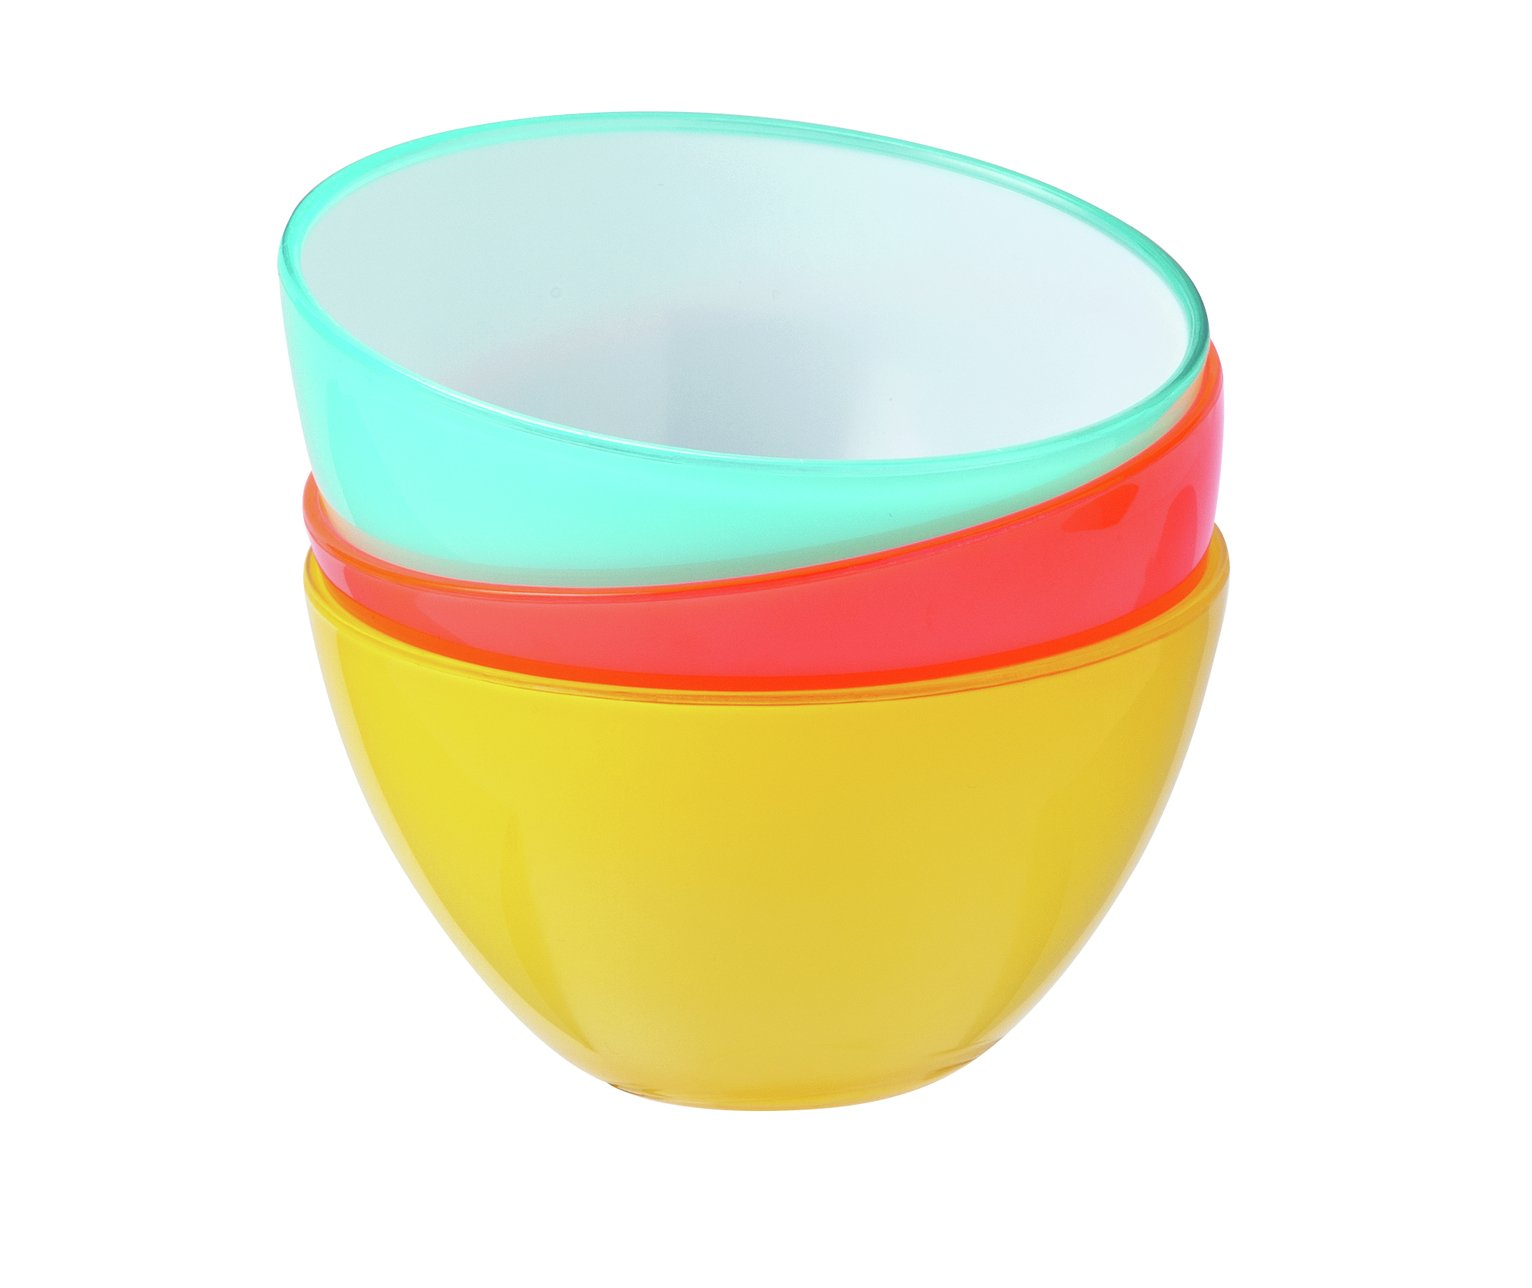 Argos Home Miami Double Inject Plastic Cereal Bowl - 4 Pack